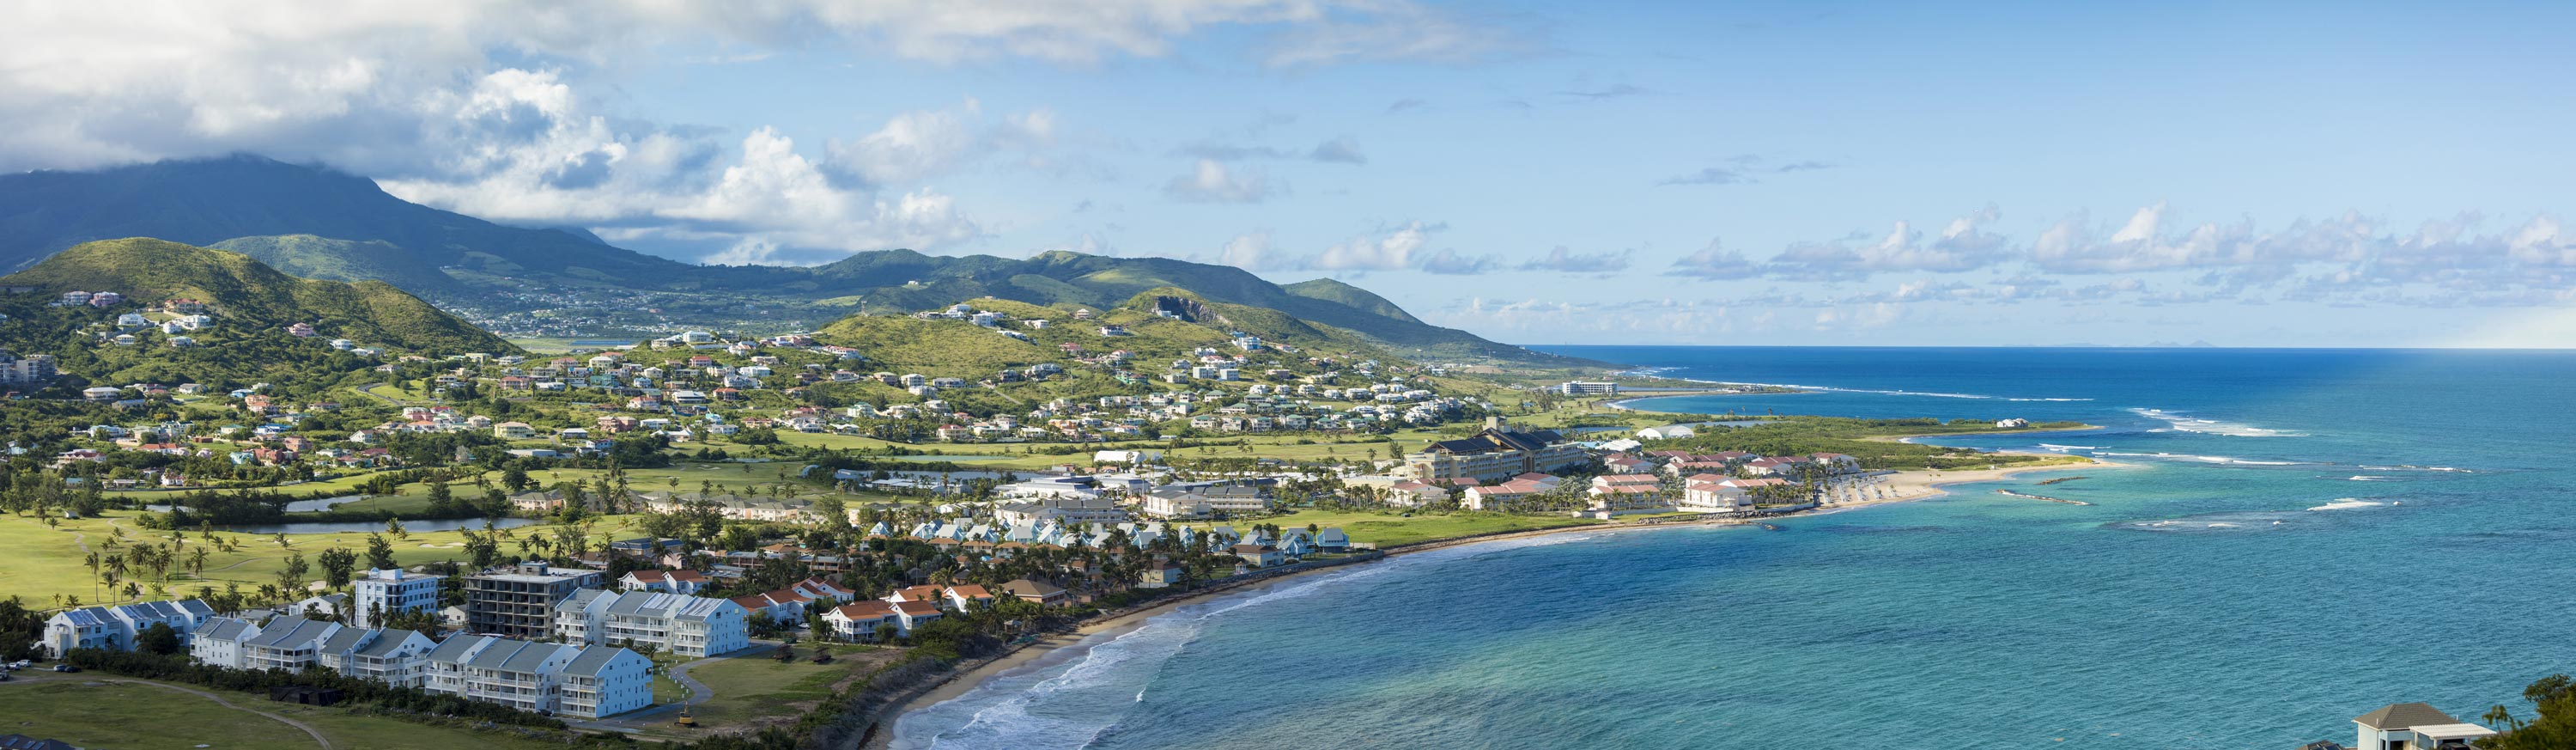 A view on the luxury destination St. Kitts